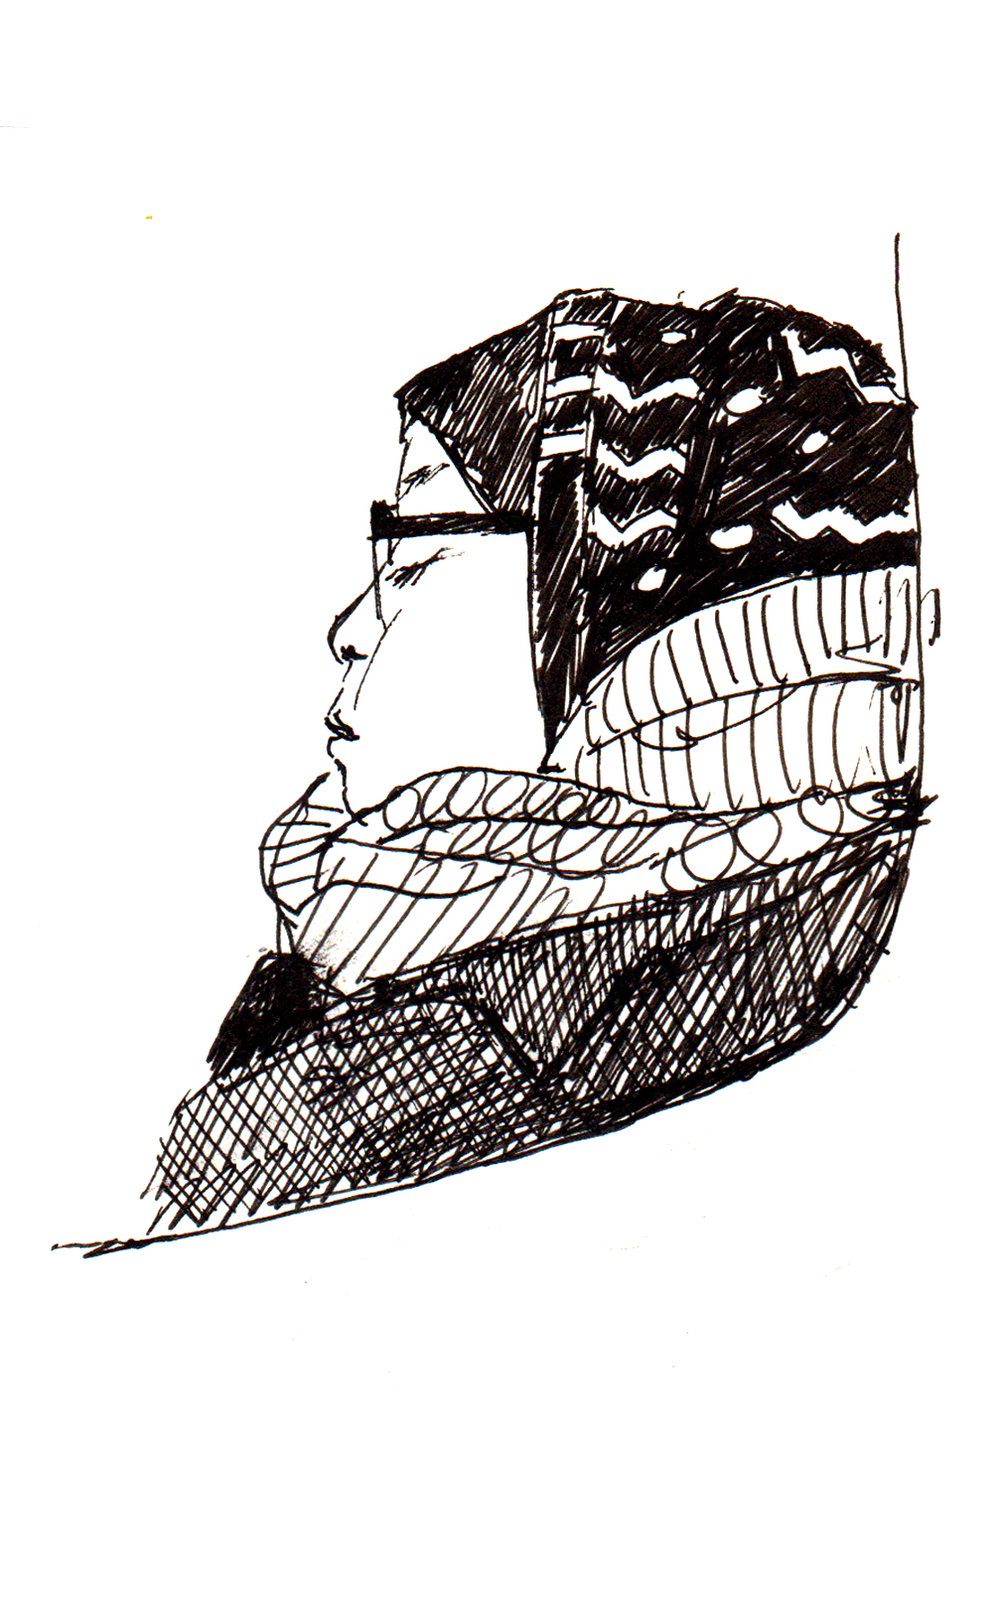 TTC Sketch - Sketch of a woman on the ttc. Ink on paper.